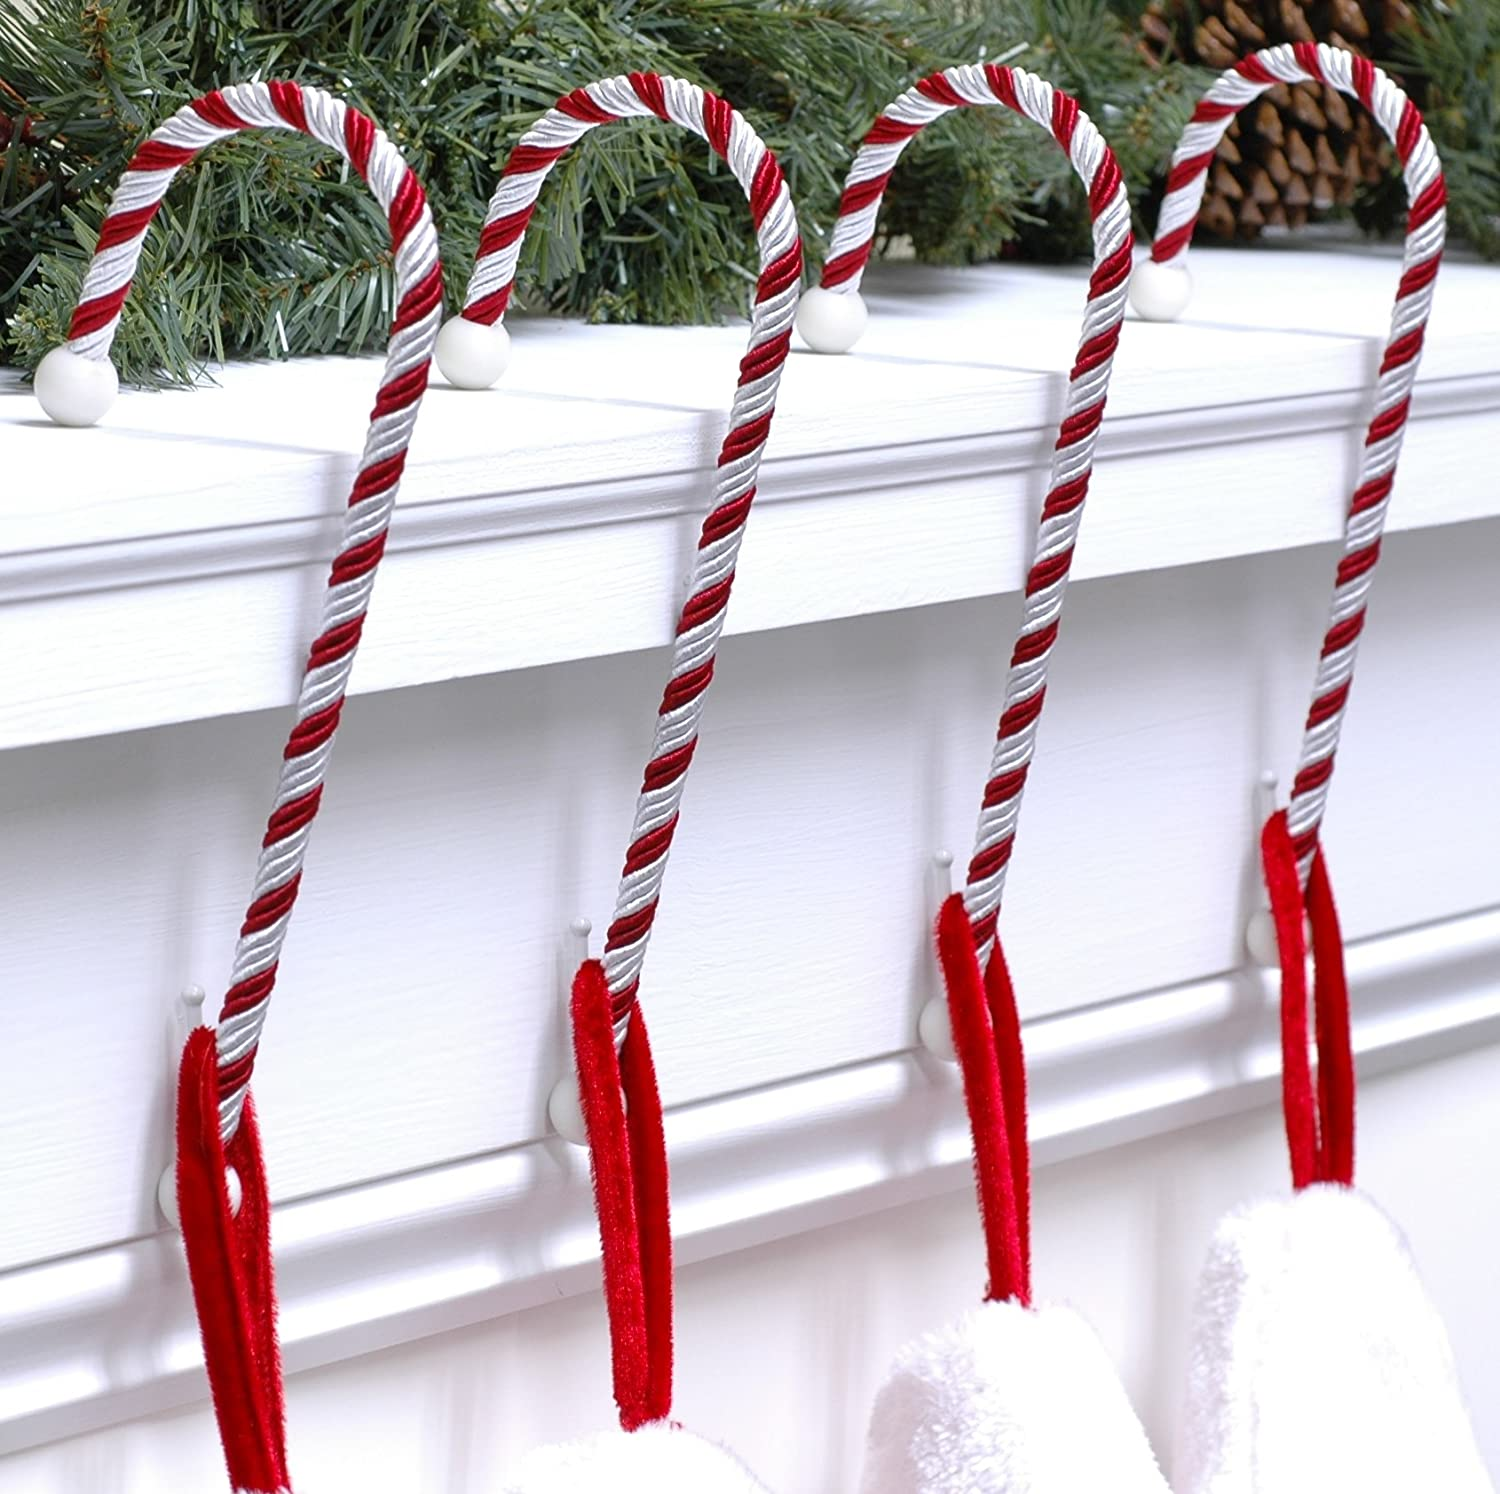 amazoncom haute decor cc0402r candy cane stocking holder 4 pack classic red and white home kitchen - Christmas Stocking Holders For Fireplace